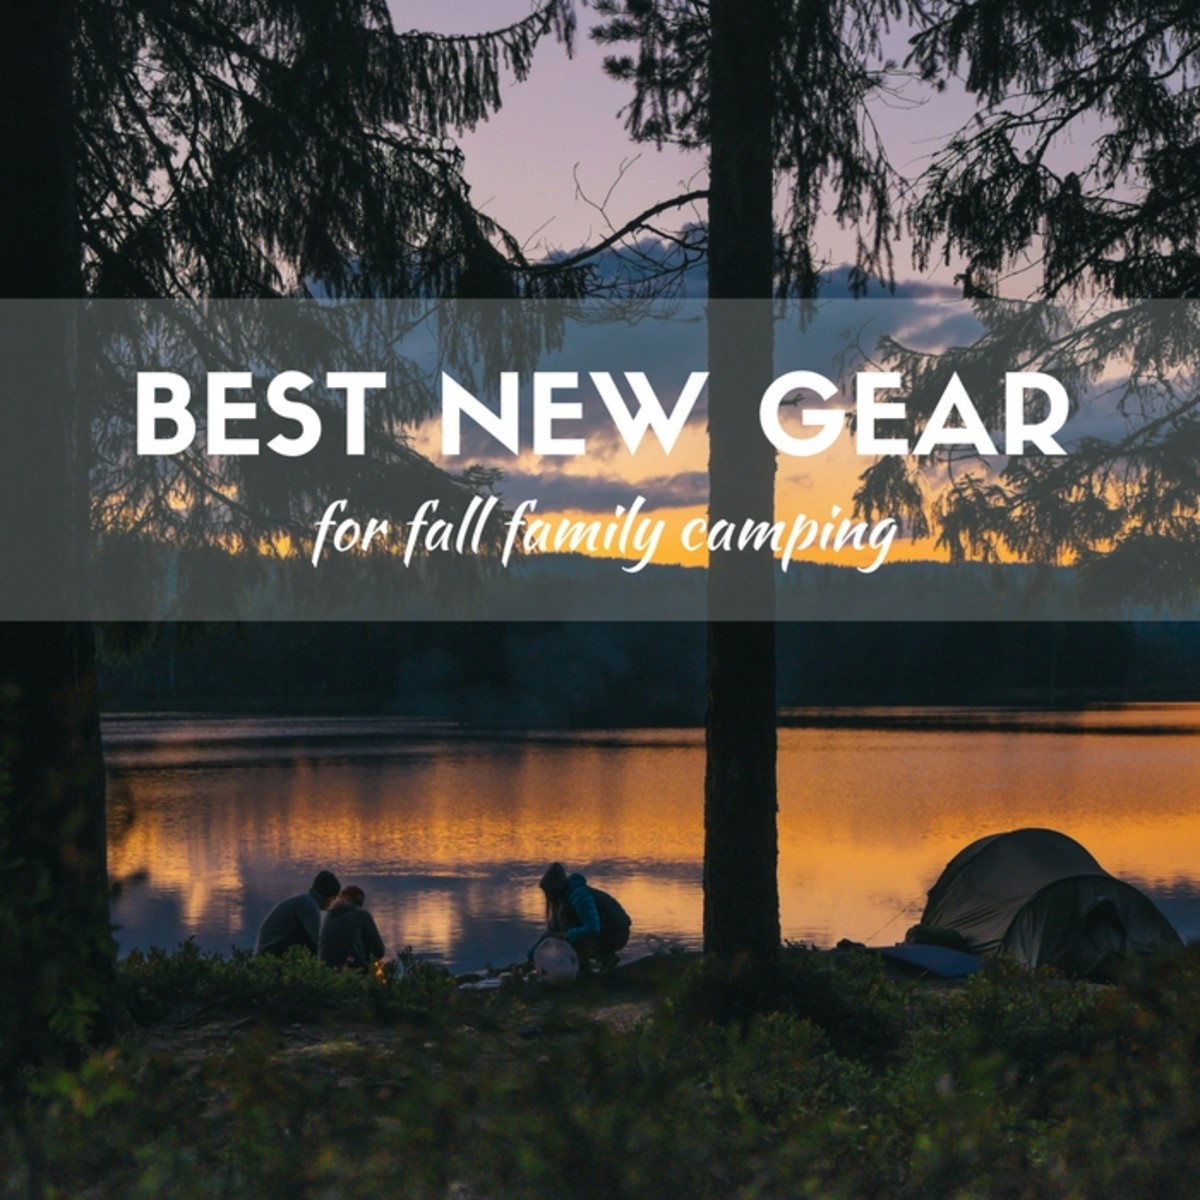 Best New Camping Gear for Fall Family Camping